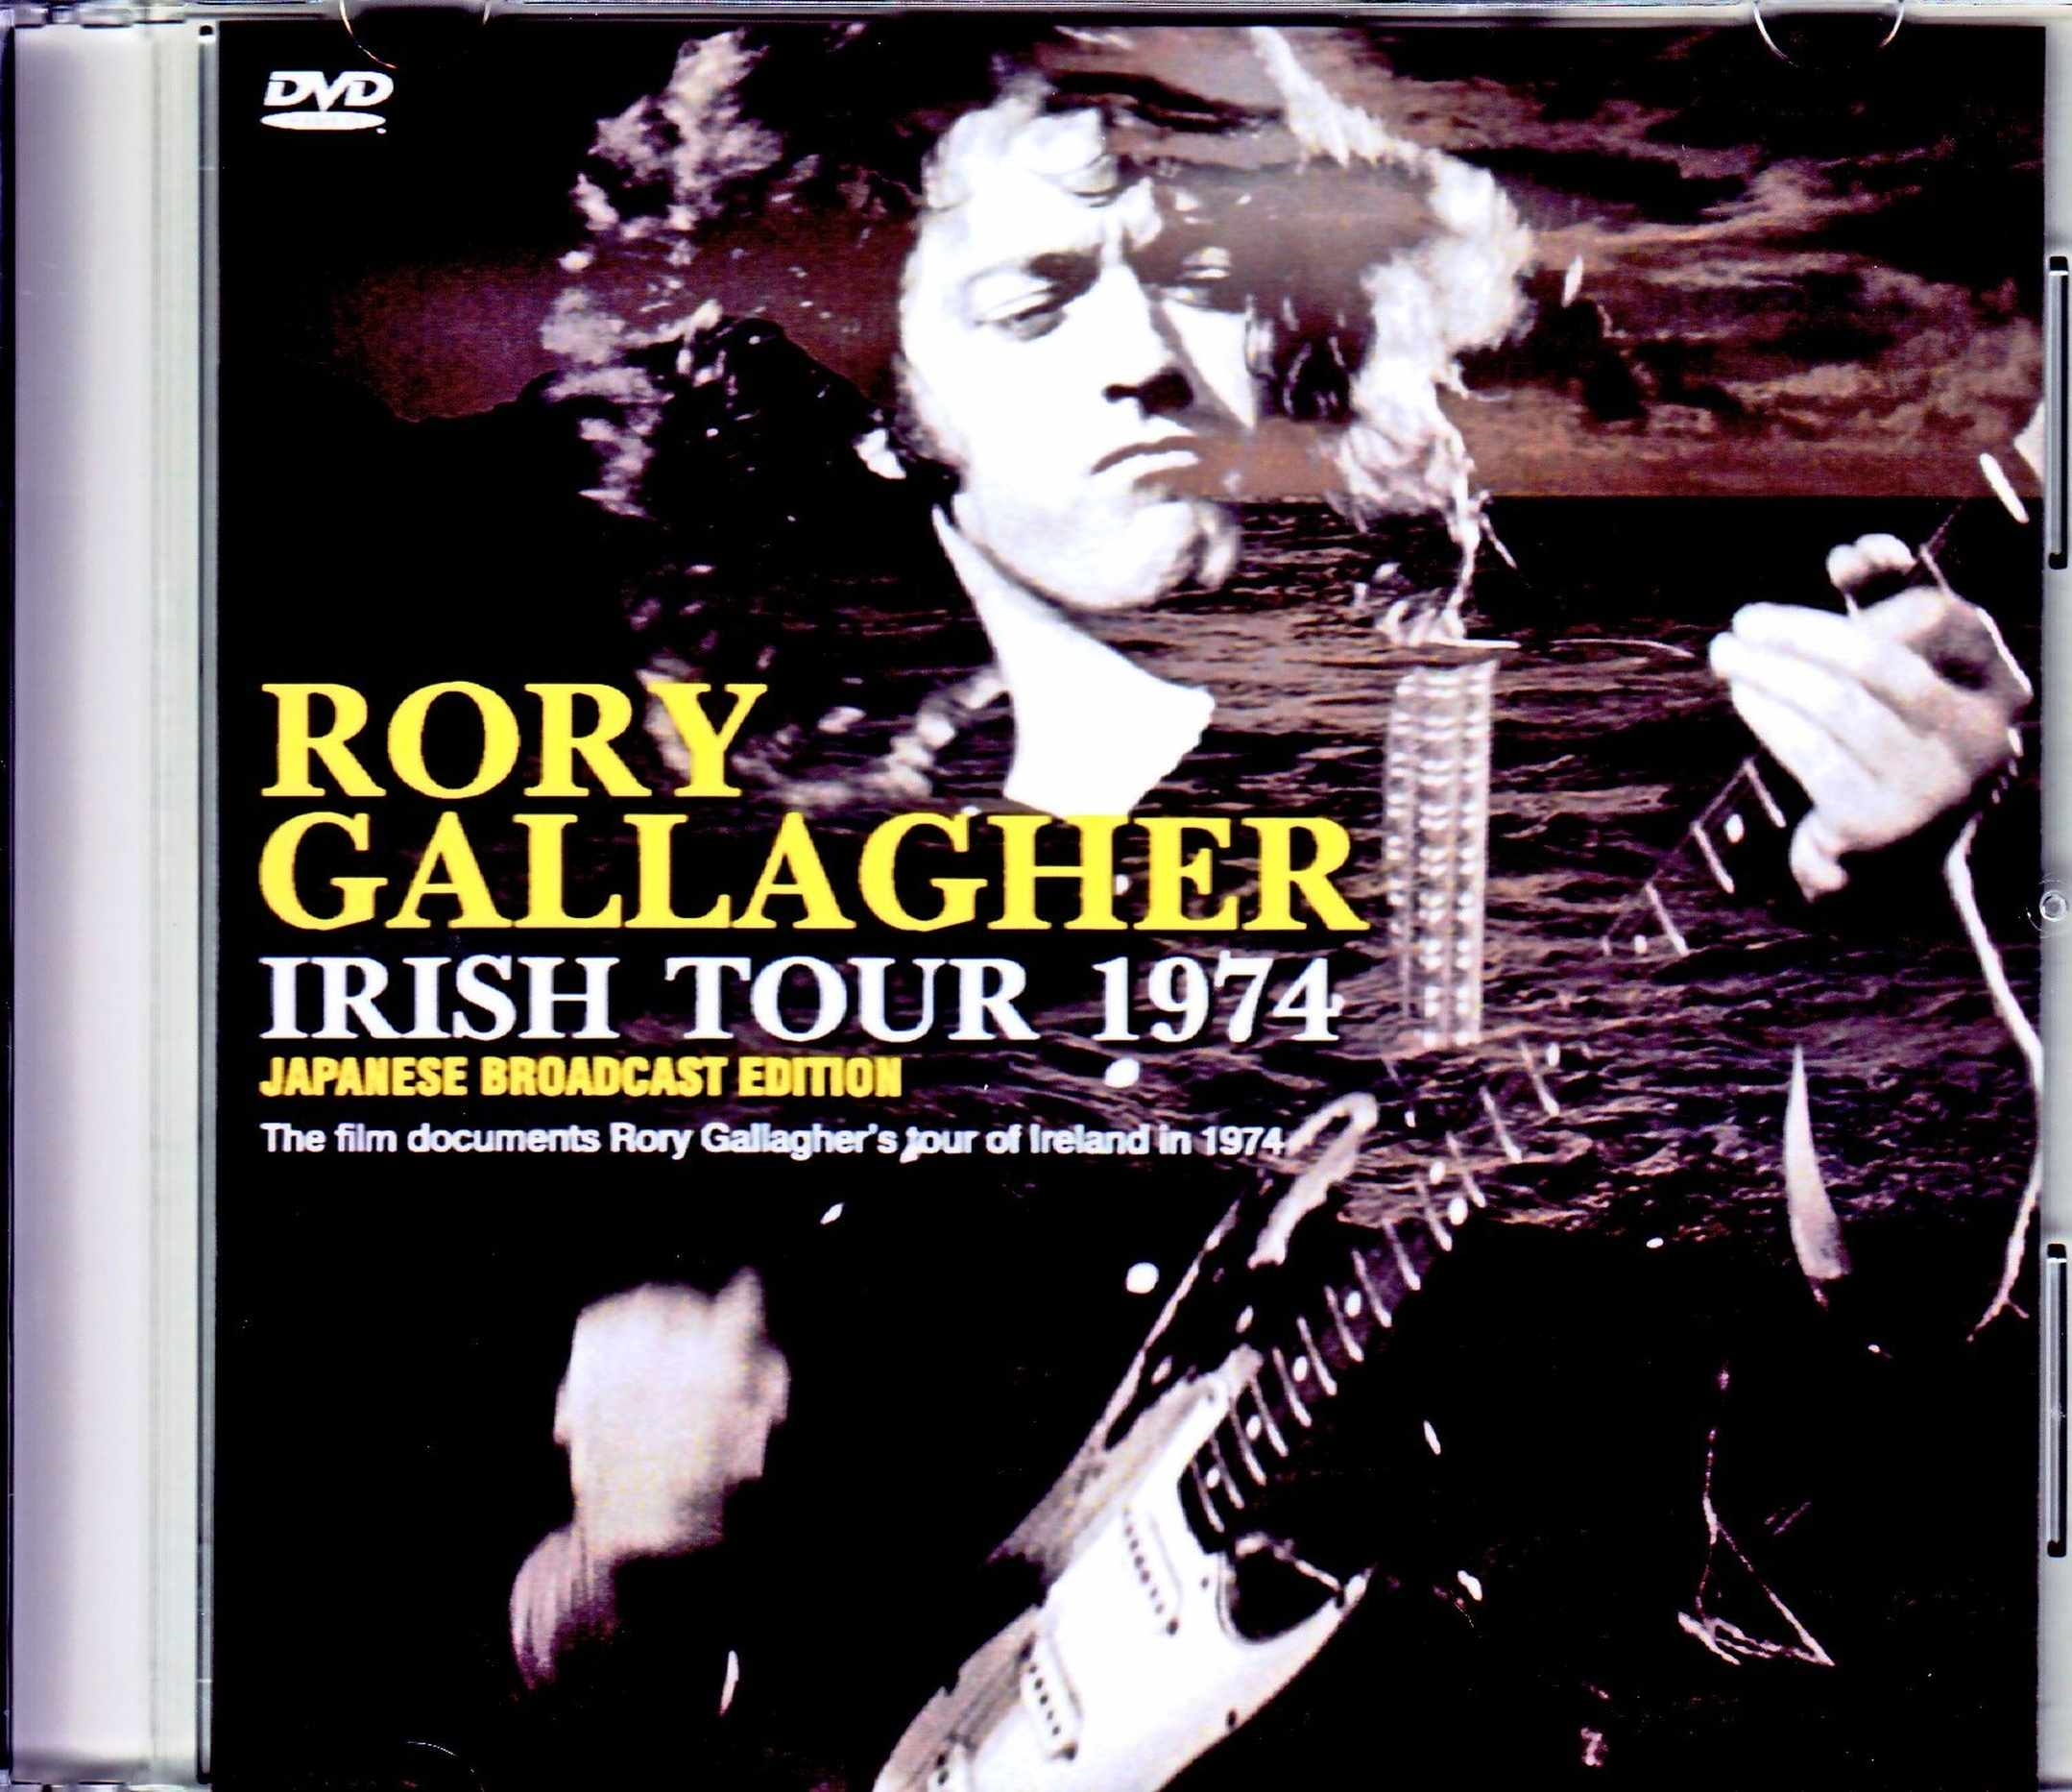 Rory Gallagher ロリー・ギャラガー/The Film Documents Tour of Ireland in 1974 Japanese Broadcast Edition